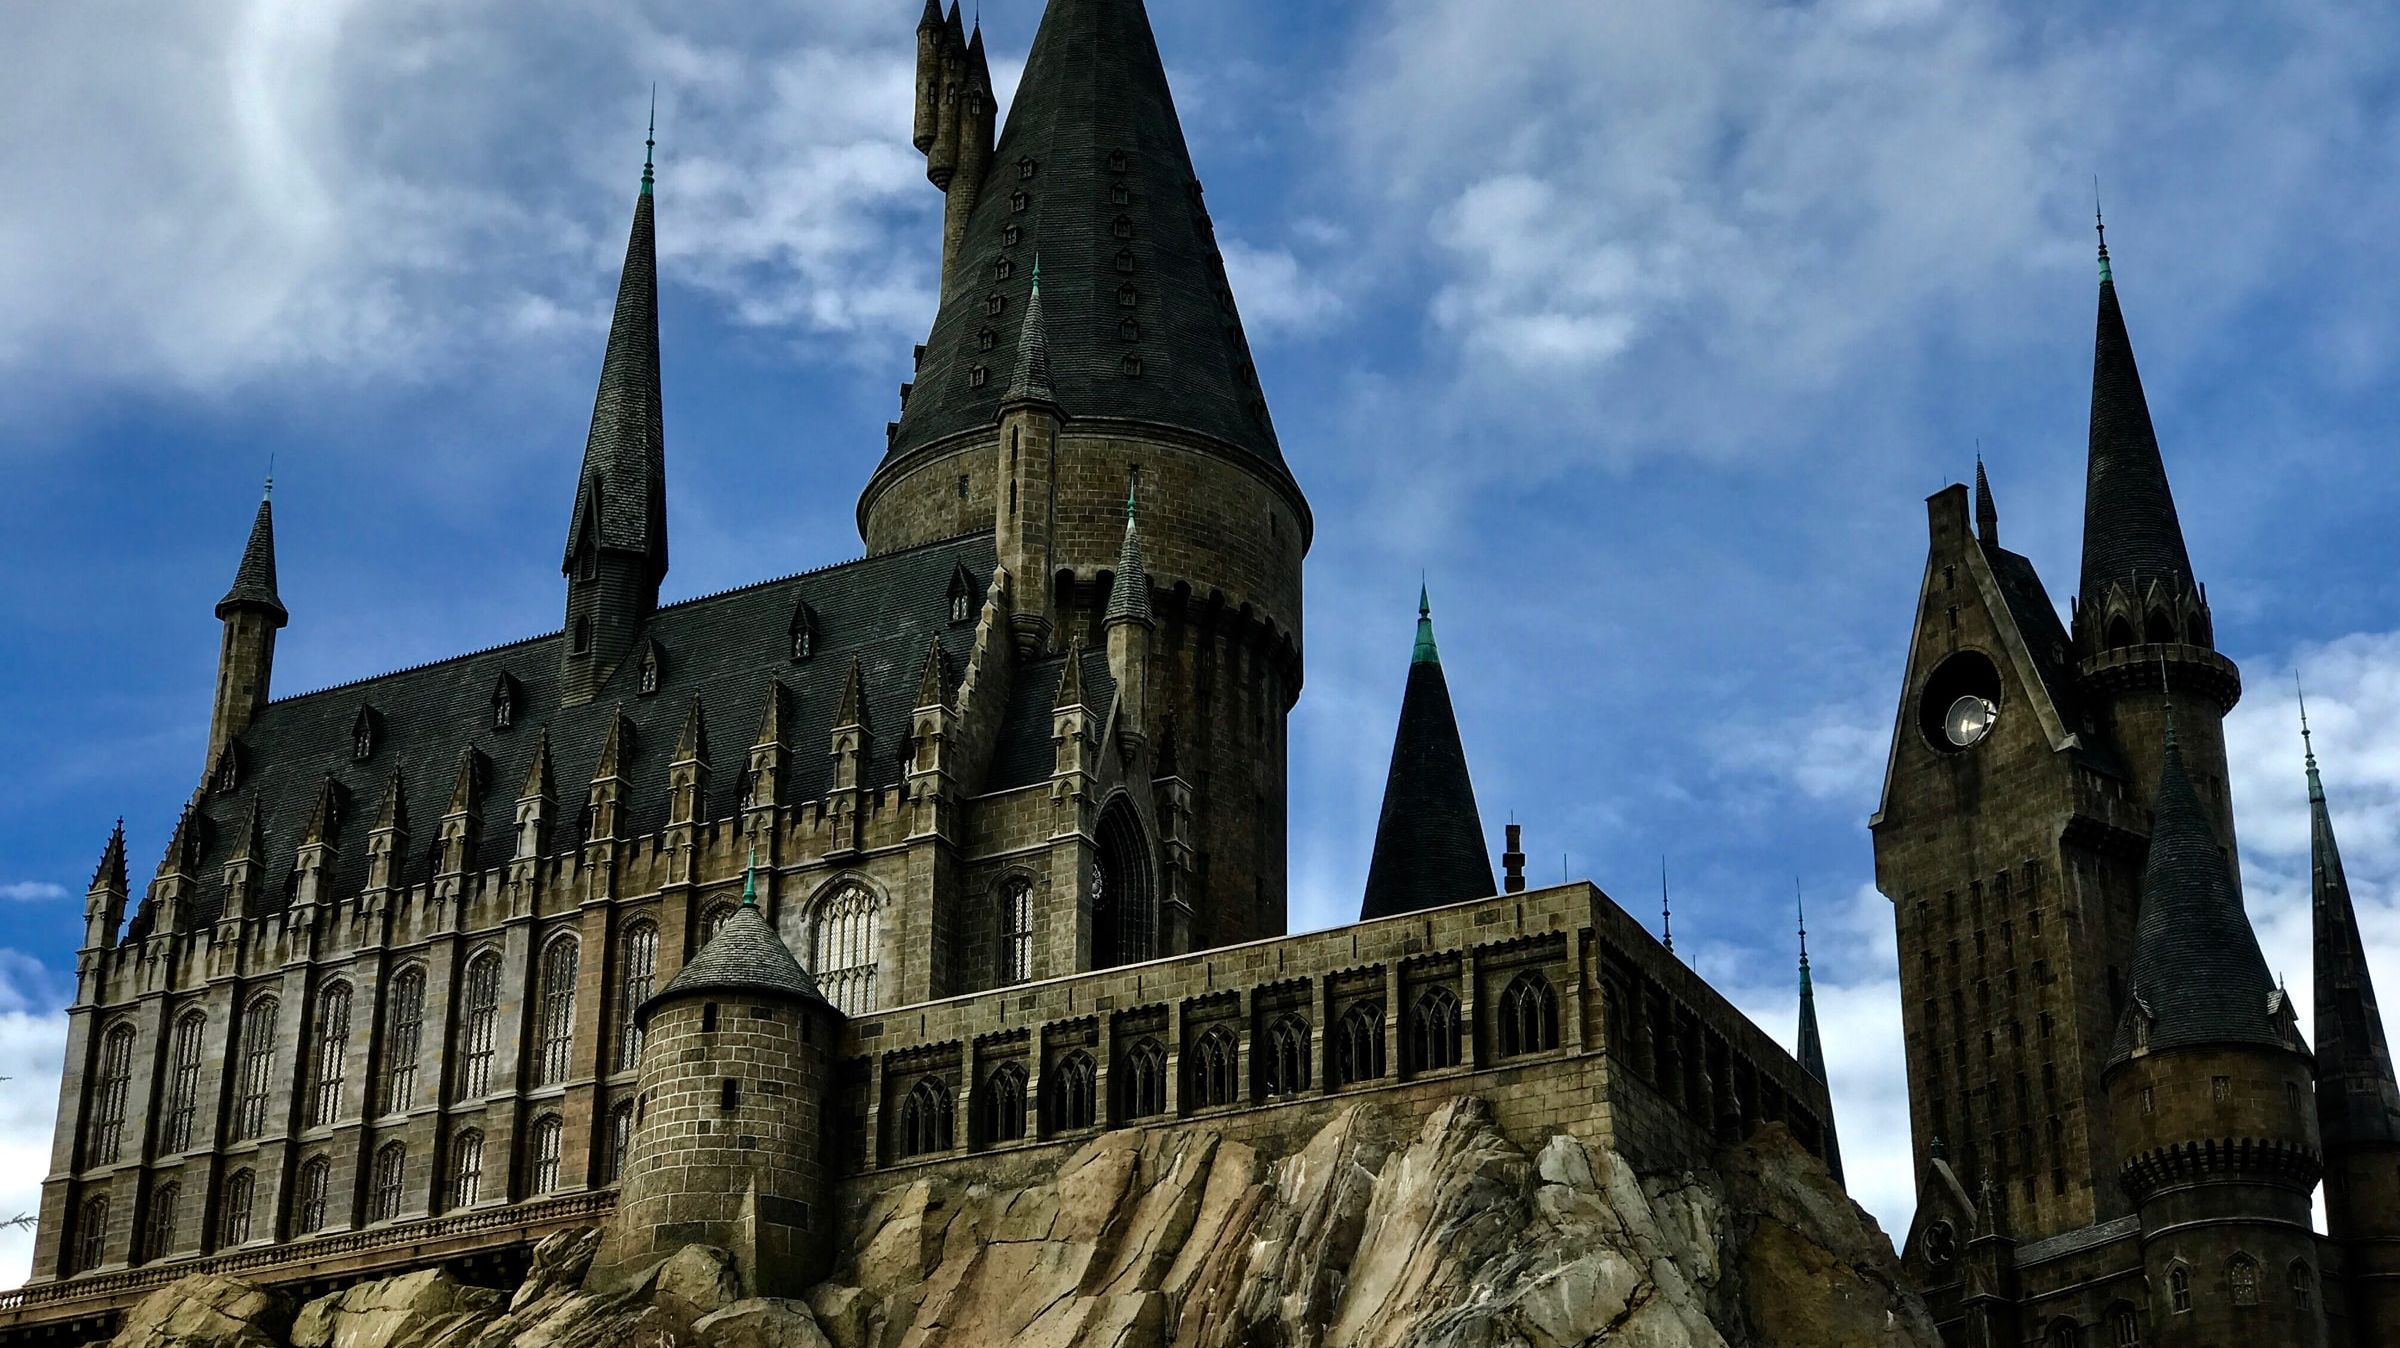 Bring Some Magic to Your Next Zoom Meeting With These Harry Potter Backgrounds